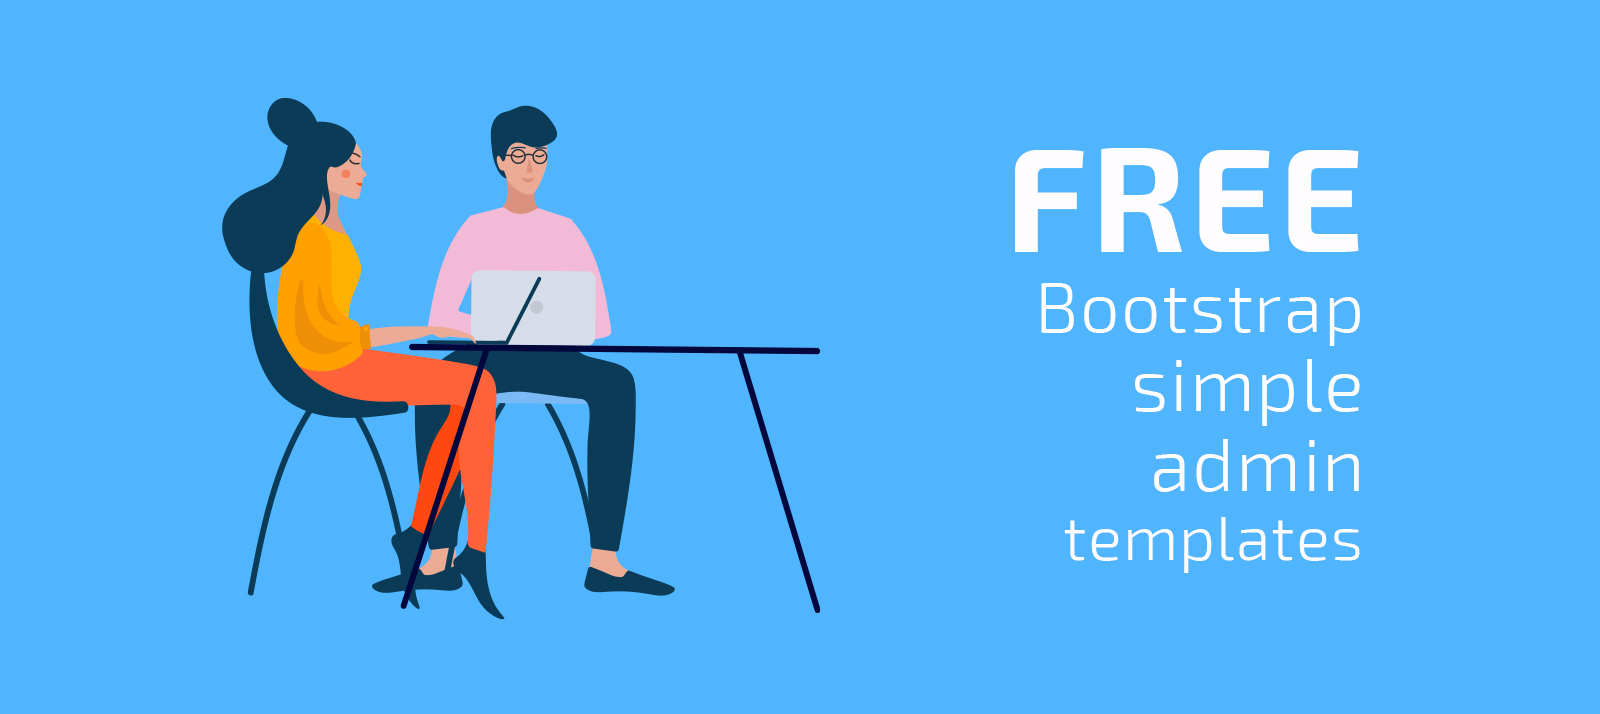 Top 15+ Free Bootstrap Simple Admin Templates 2020